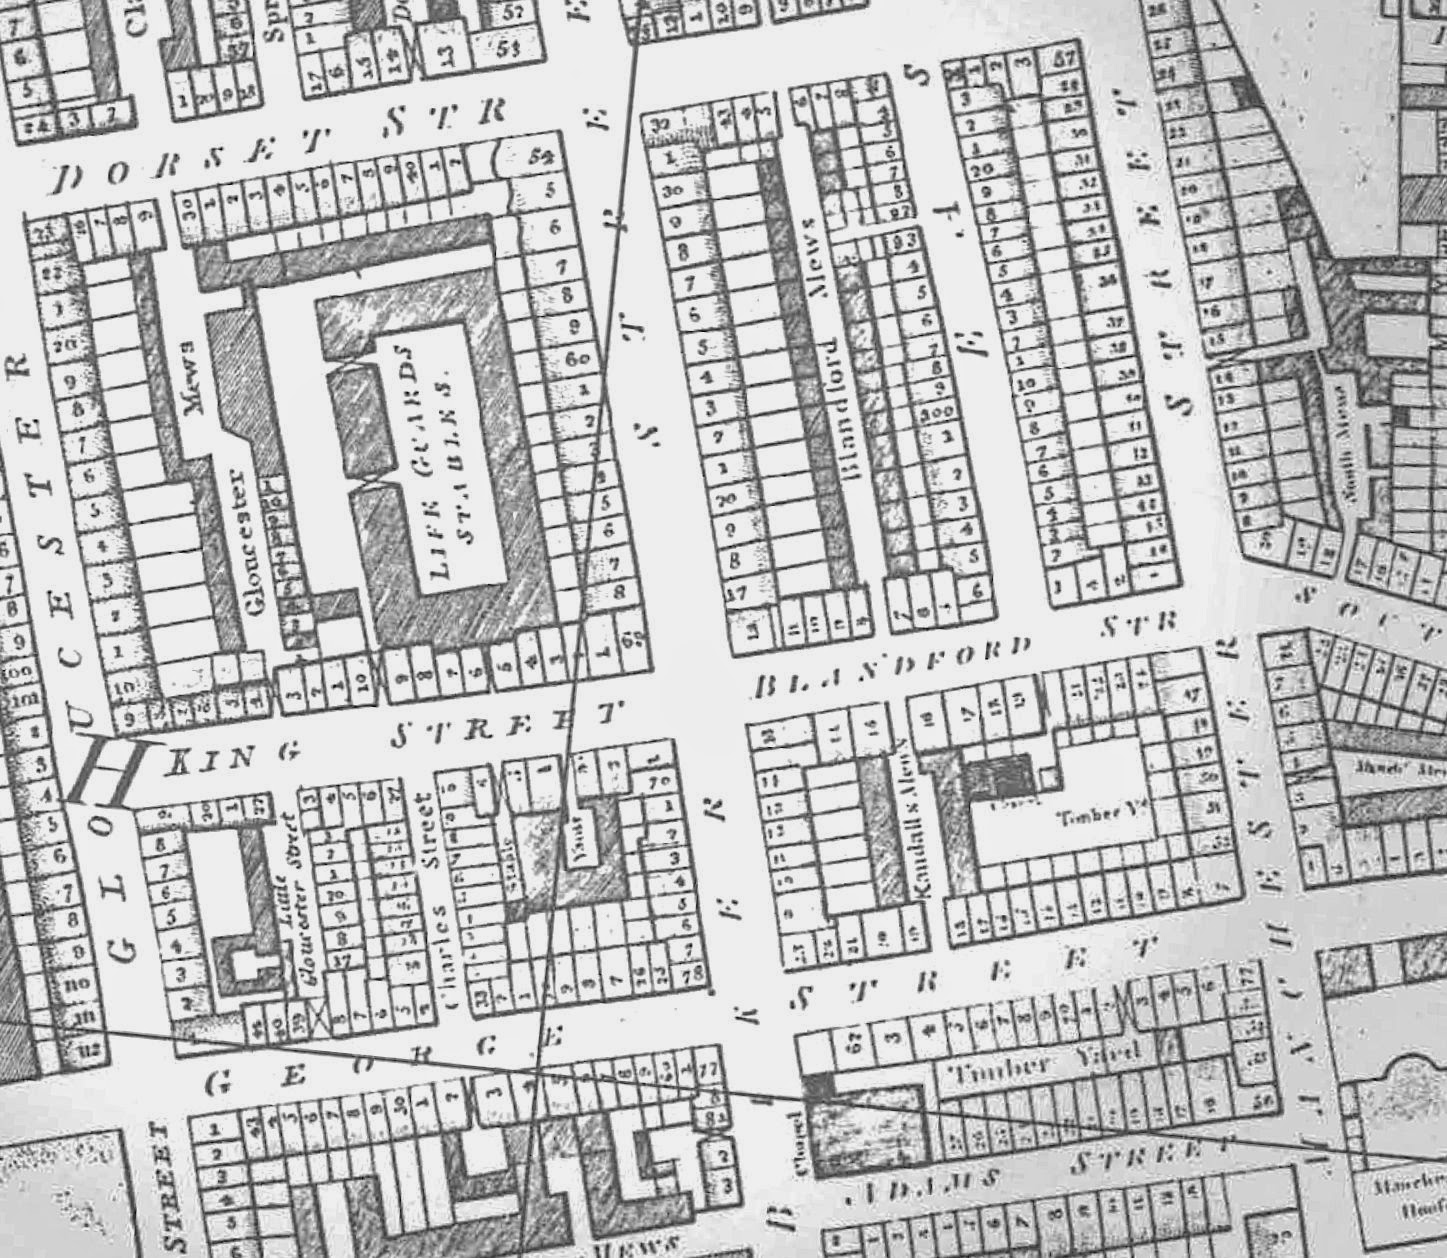 A look at the layout around Baker Street via a Grub Street project